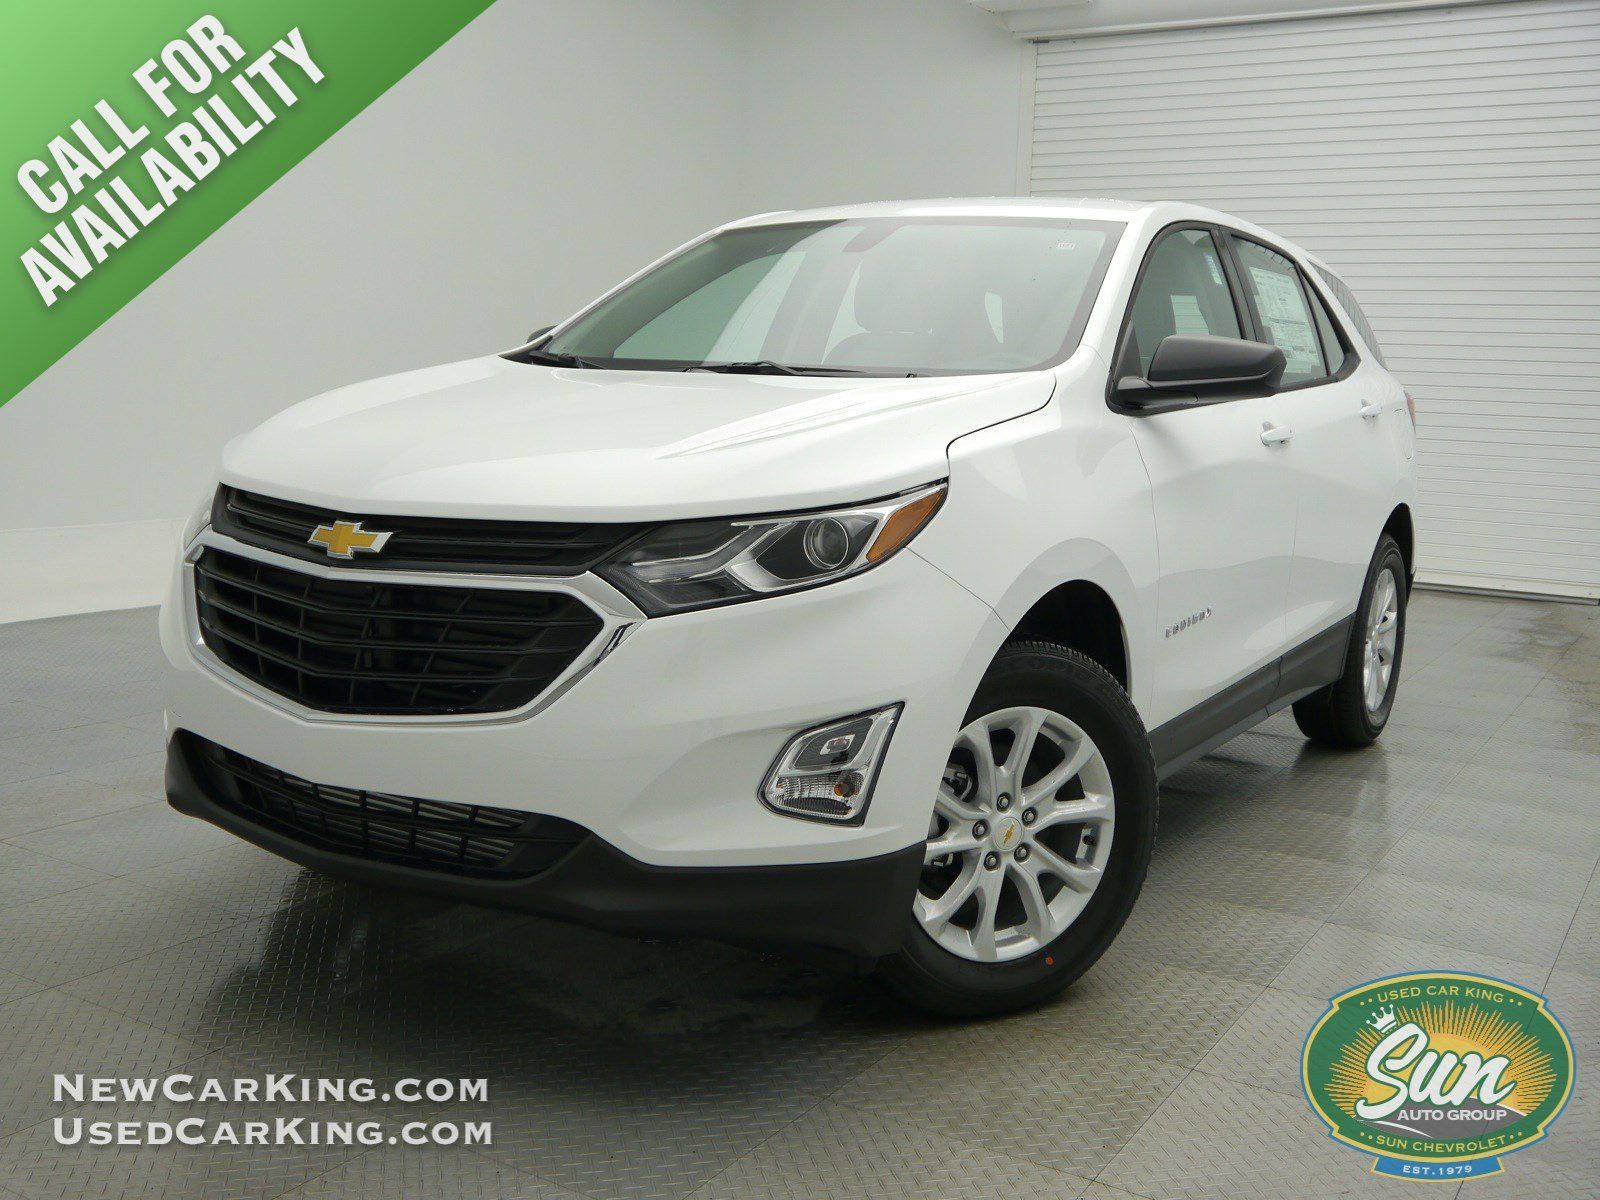 Chevy Equinox 2018 Lease Chevy Equinox Chevy 2018 Chevy Equinox